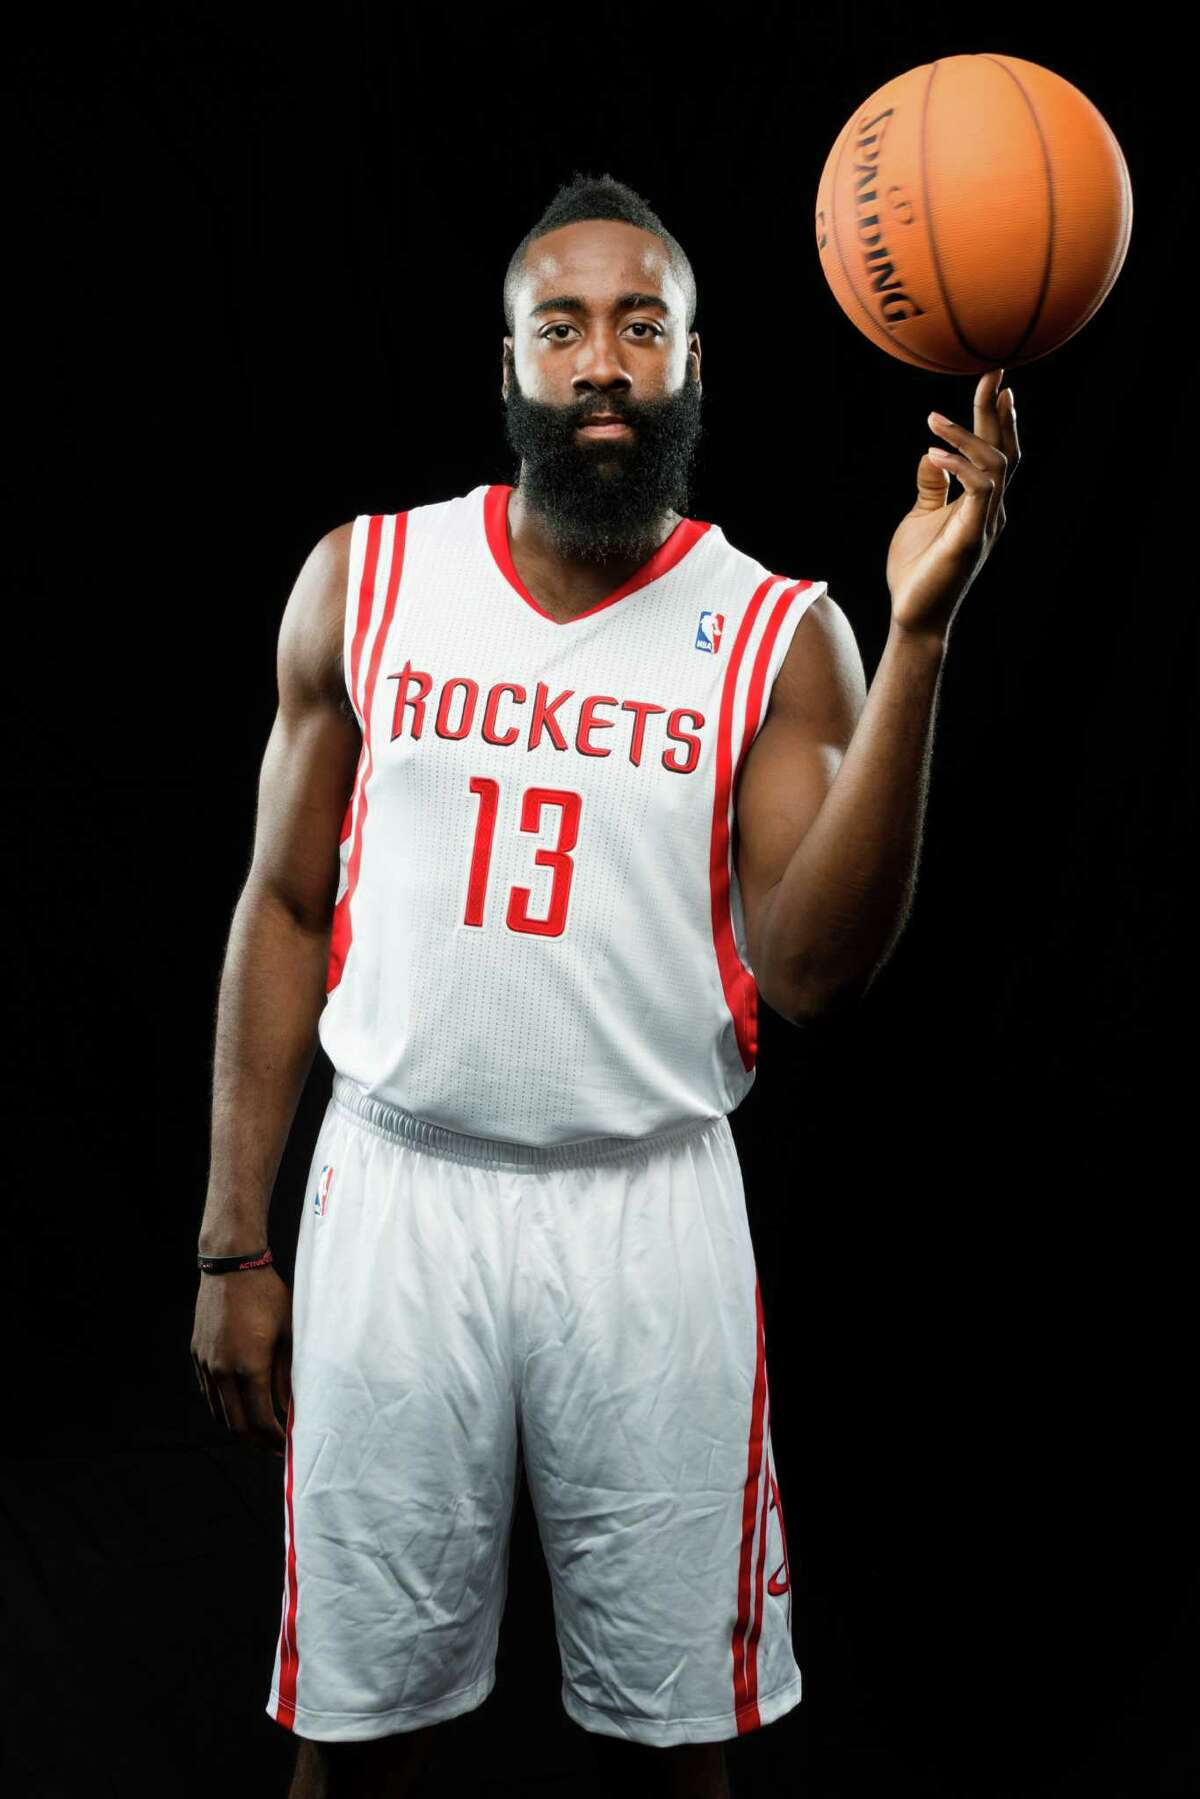 Houston Rockets shooting guard James Harden during media day at Toyota Center on Friday, Sept. 27, 2013, in Houston. ( Smiley N. Pool / Houston Chronicle )